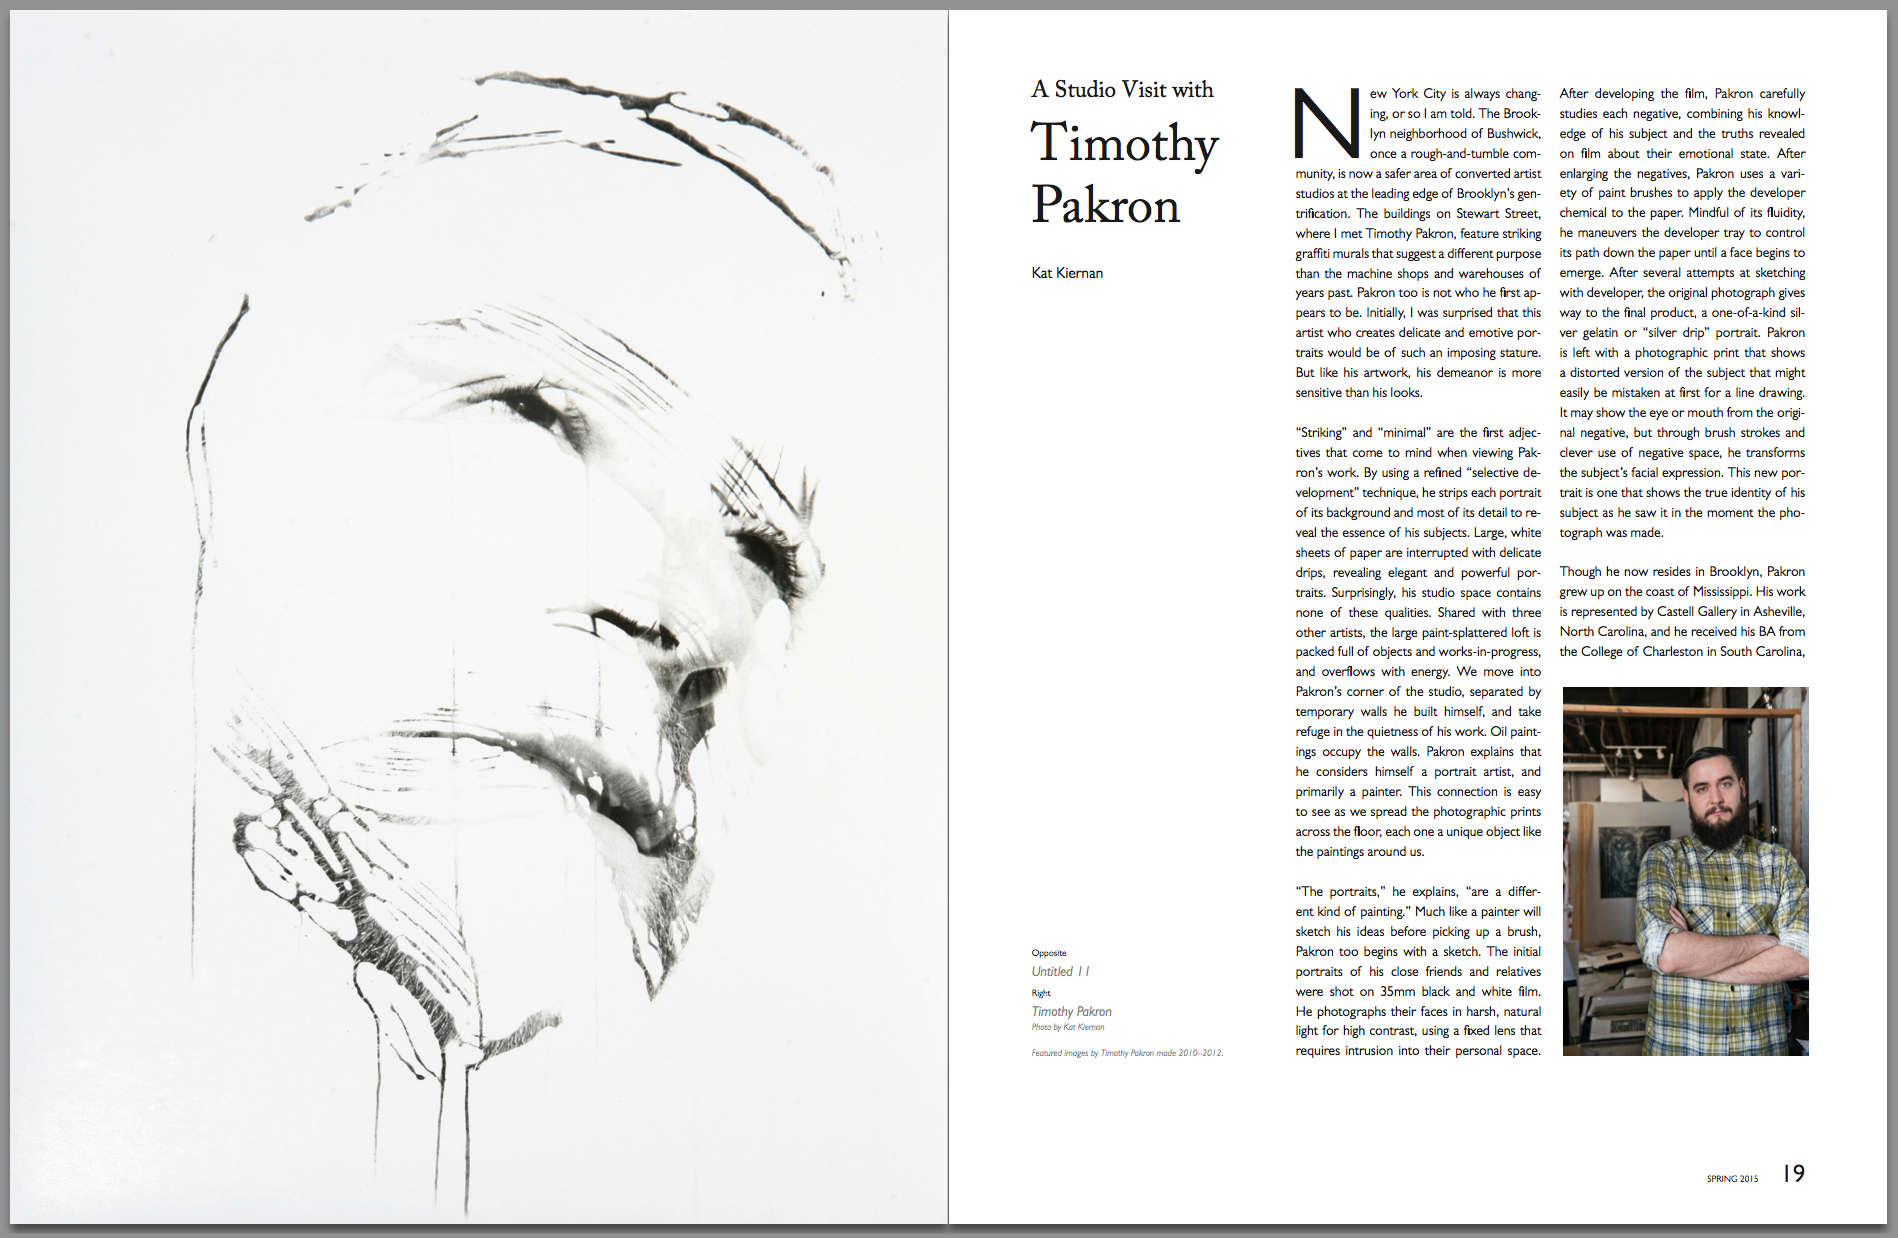 A Studio Visit with Timothy Pakron  Don't Take Pictures, Issue 4 (March 2015)